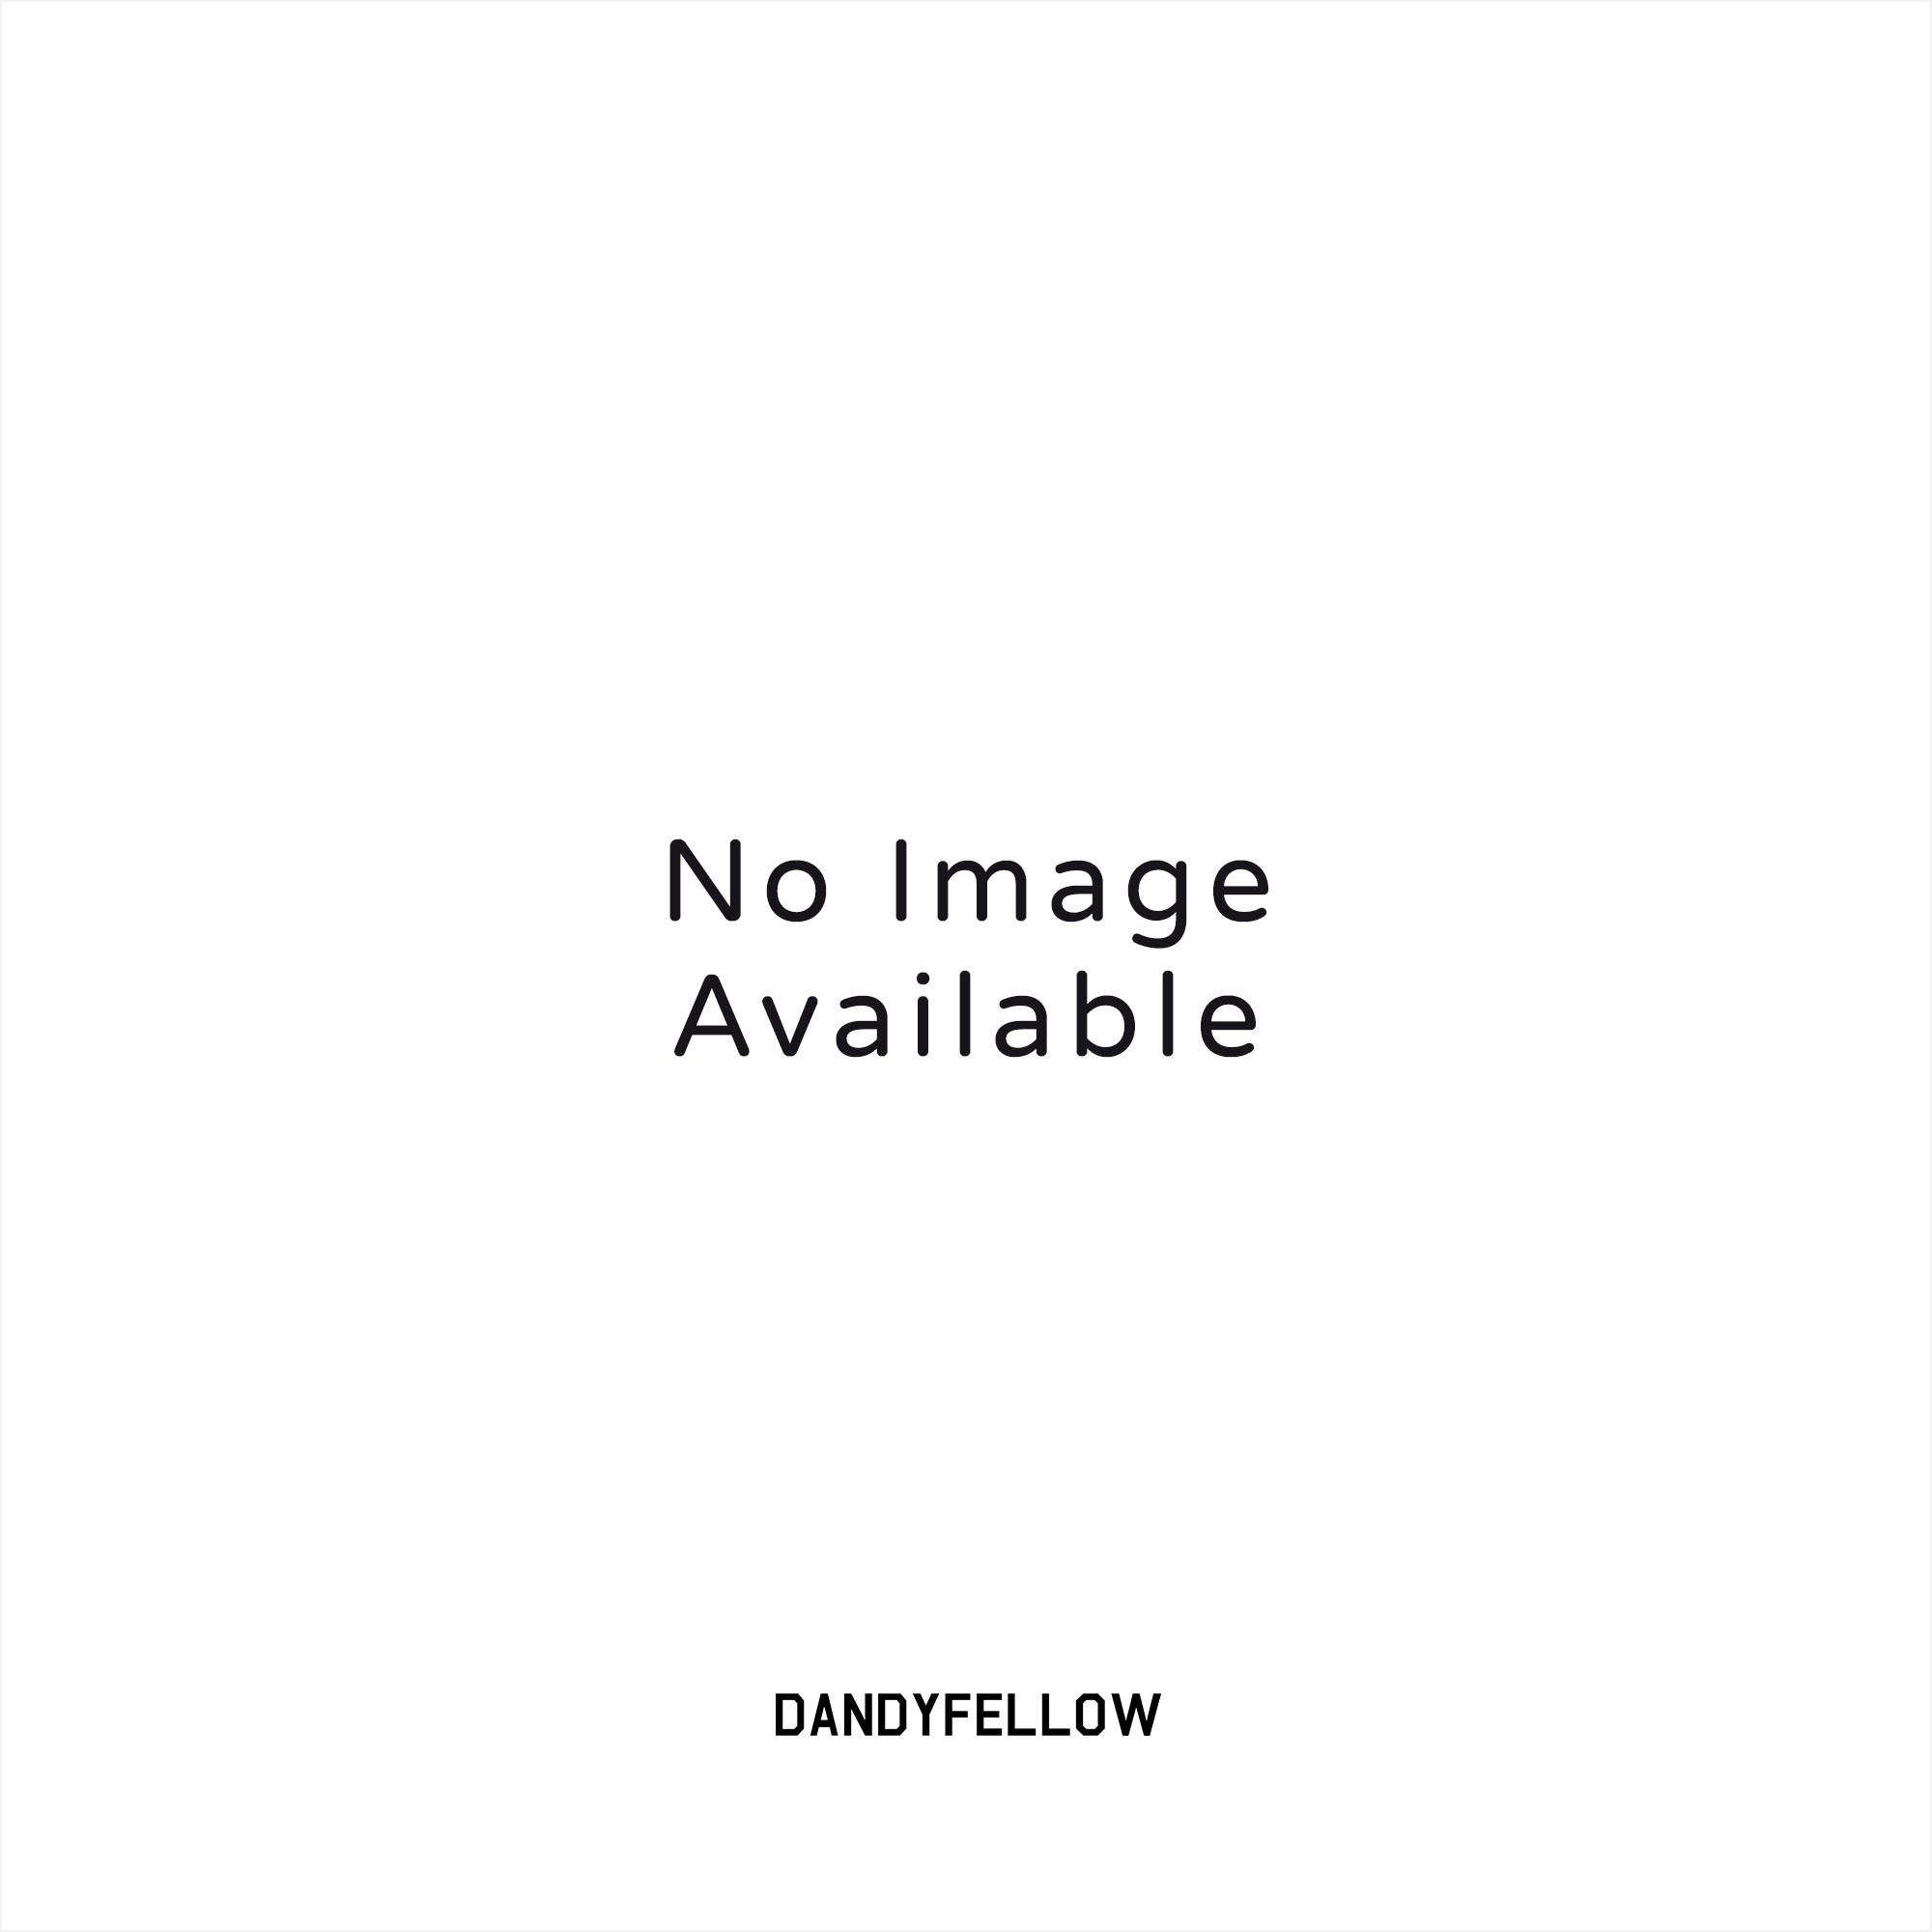 2d1ece44ac7 Canada Goose Menswear Shop | The Chateau Black Jacket - Winter Jacket